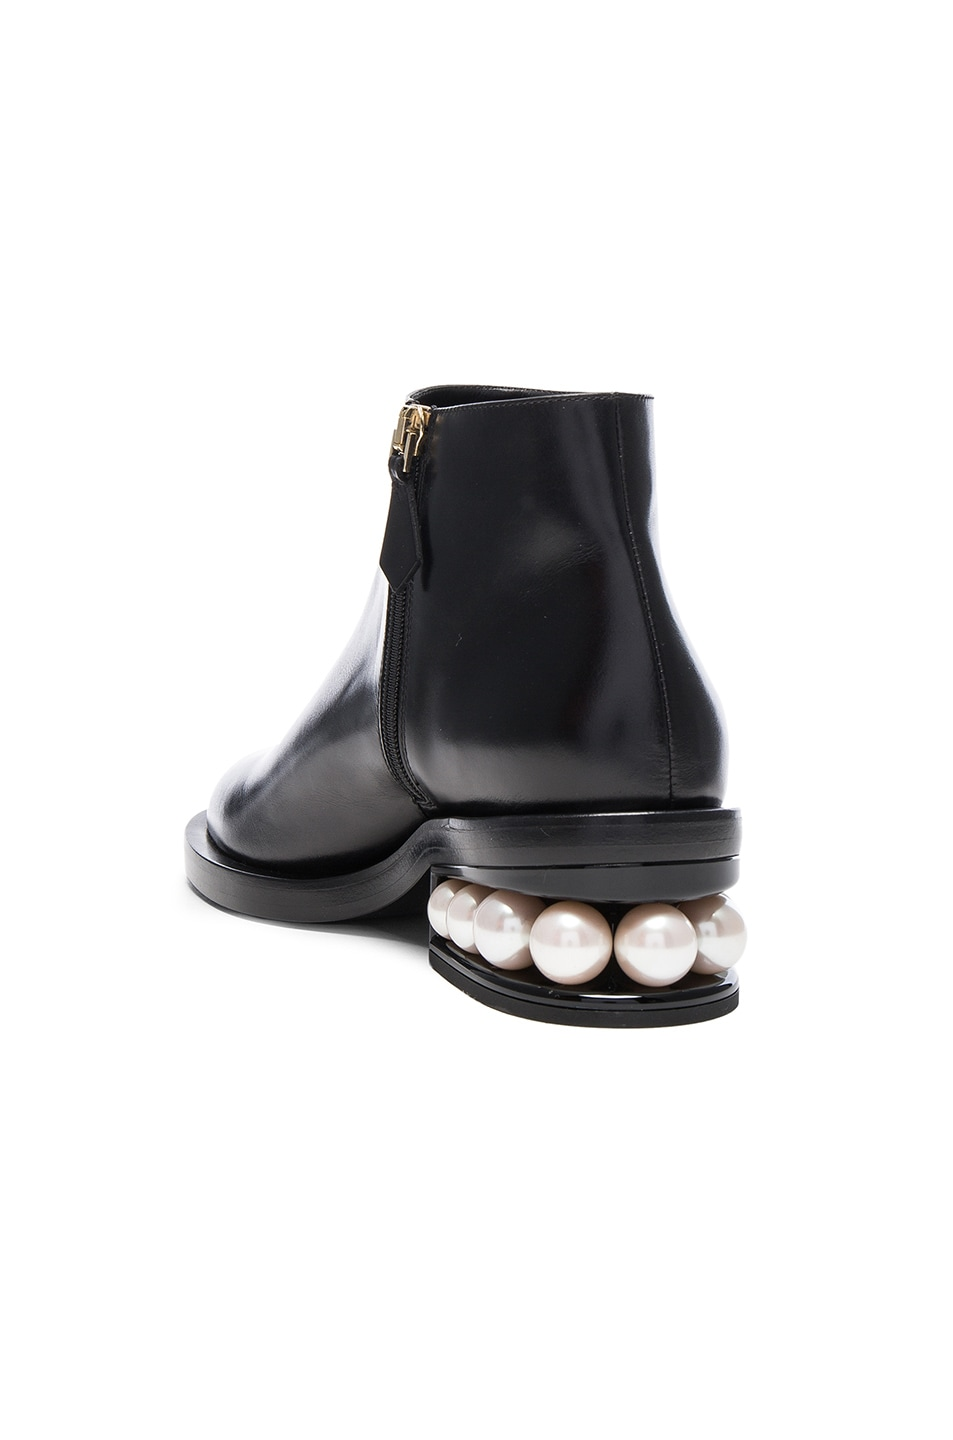 Image 3 of Nicholas Kirkwood Leather Casati Pearl Boots in Black